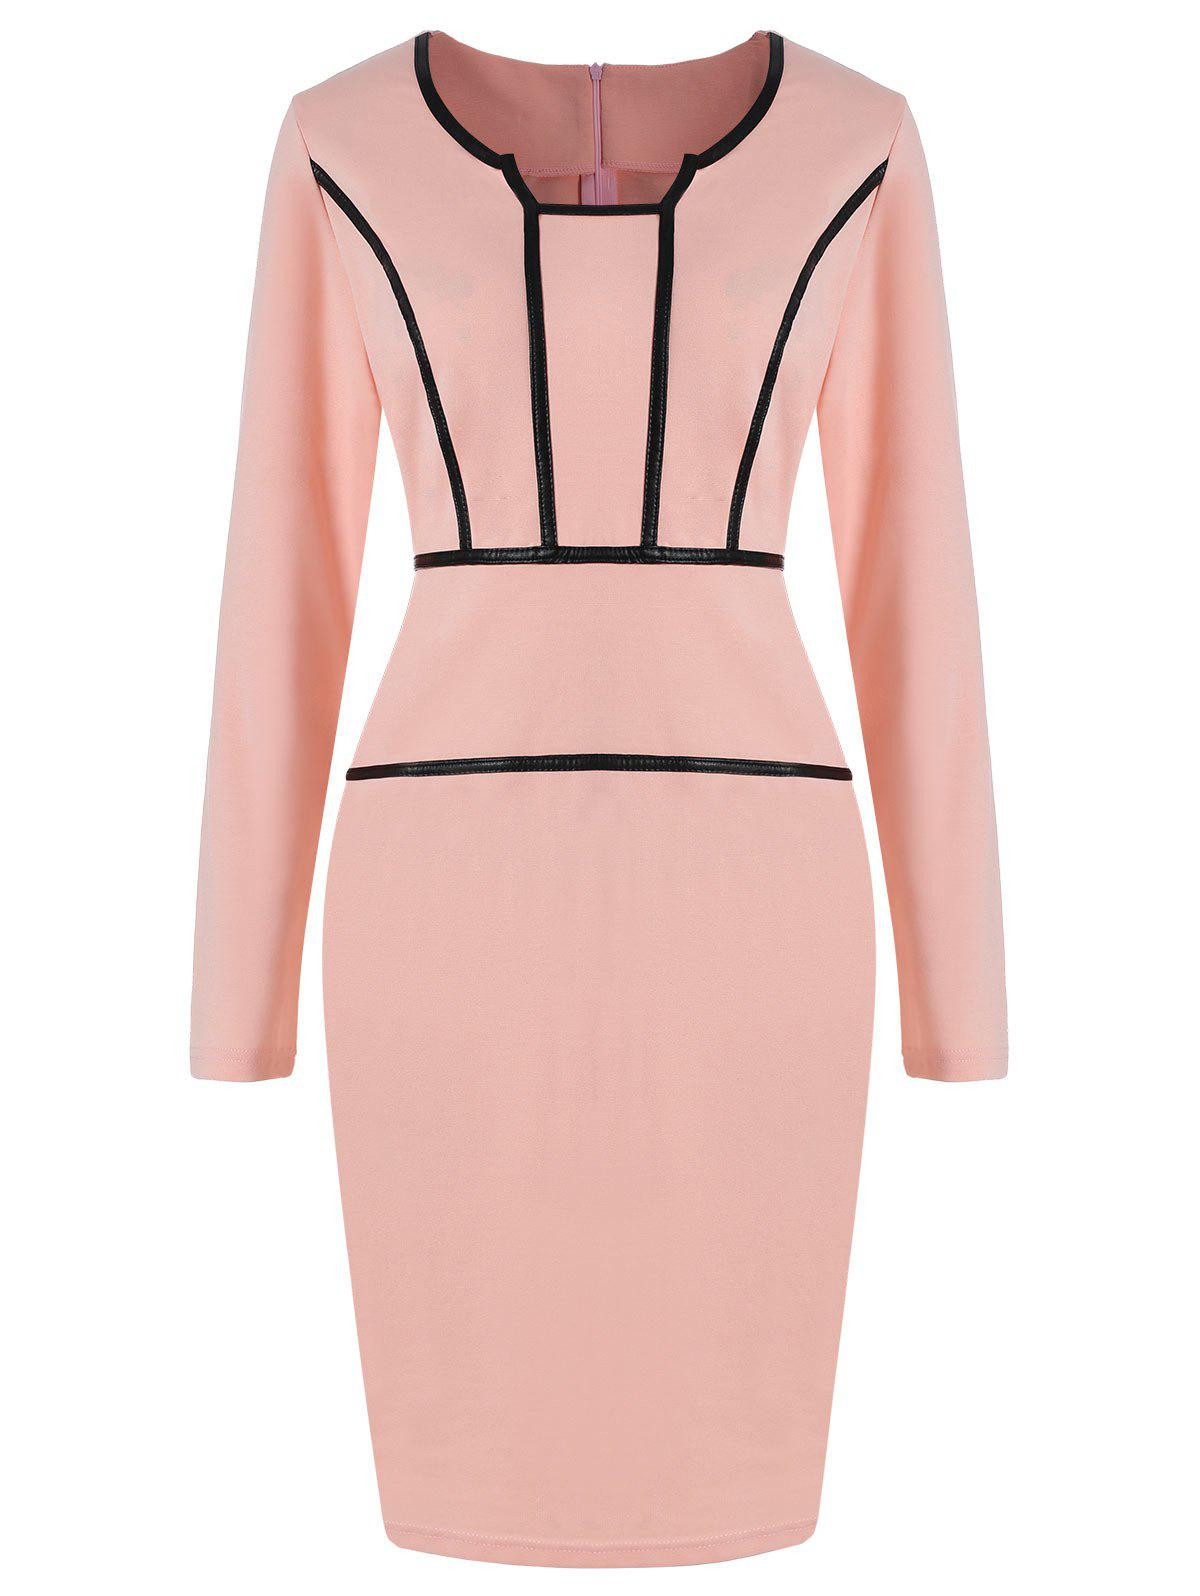 PU Trim Long Sleeve Party Pencil Dress - PINK M